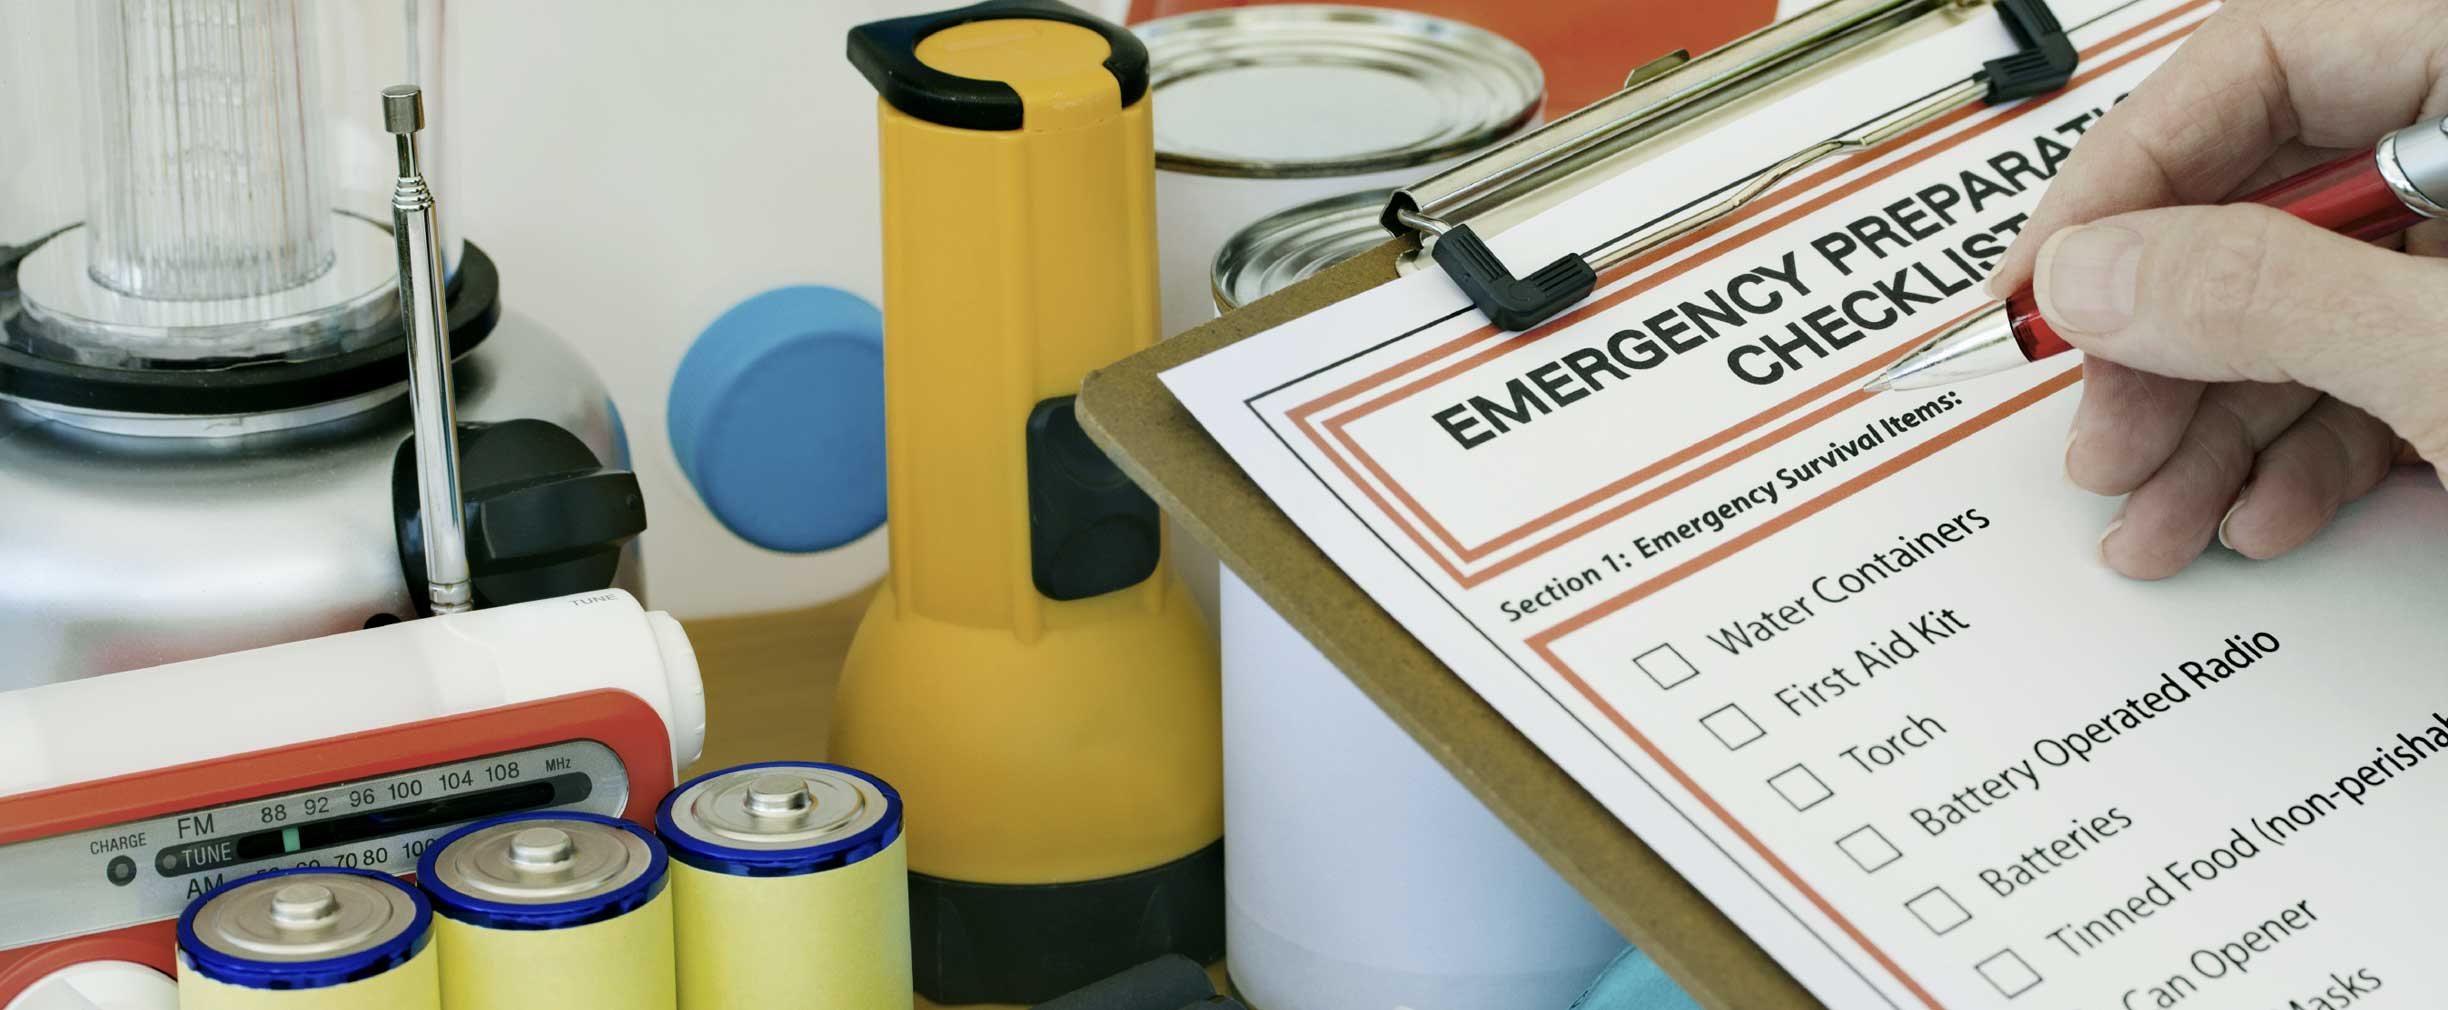 Creating a Family Disaster Preparedness Plan